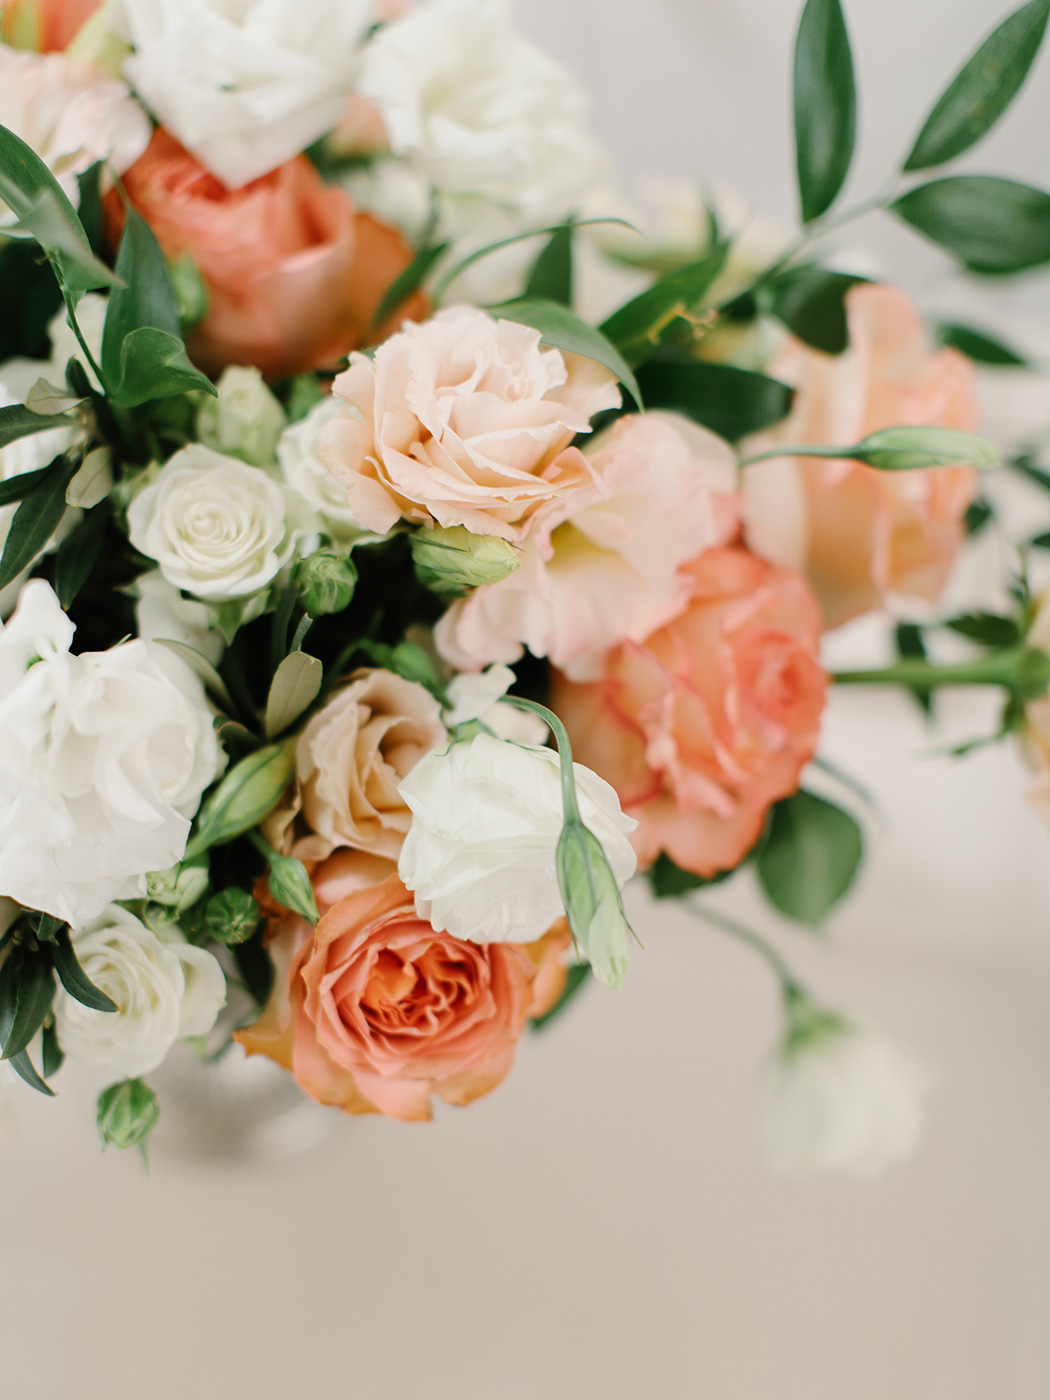 Floral Decoration | Rensche Mari Photography